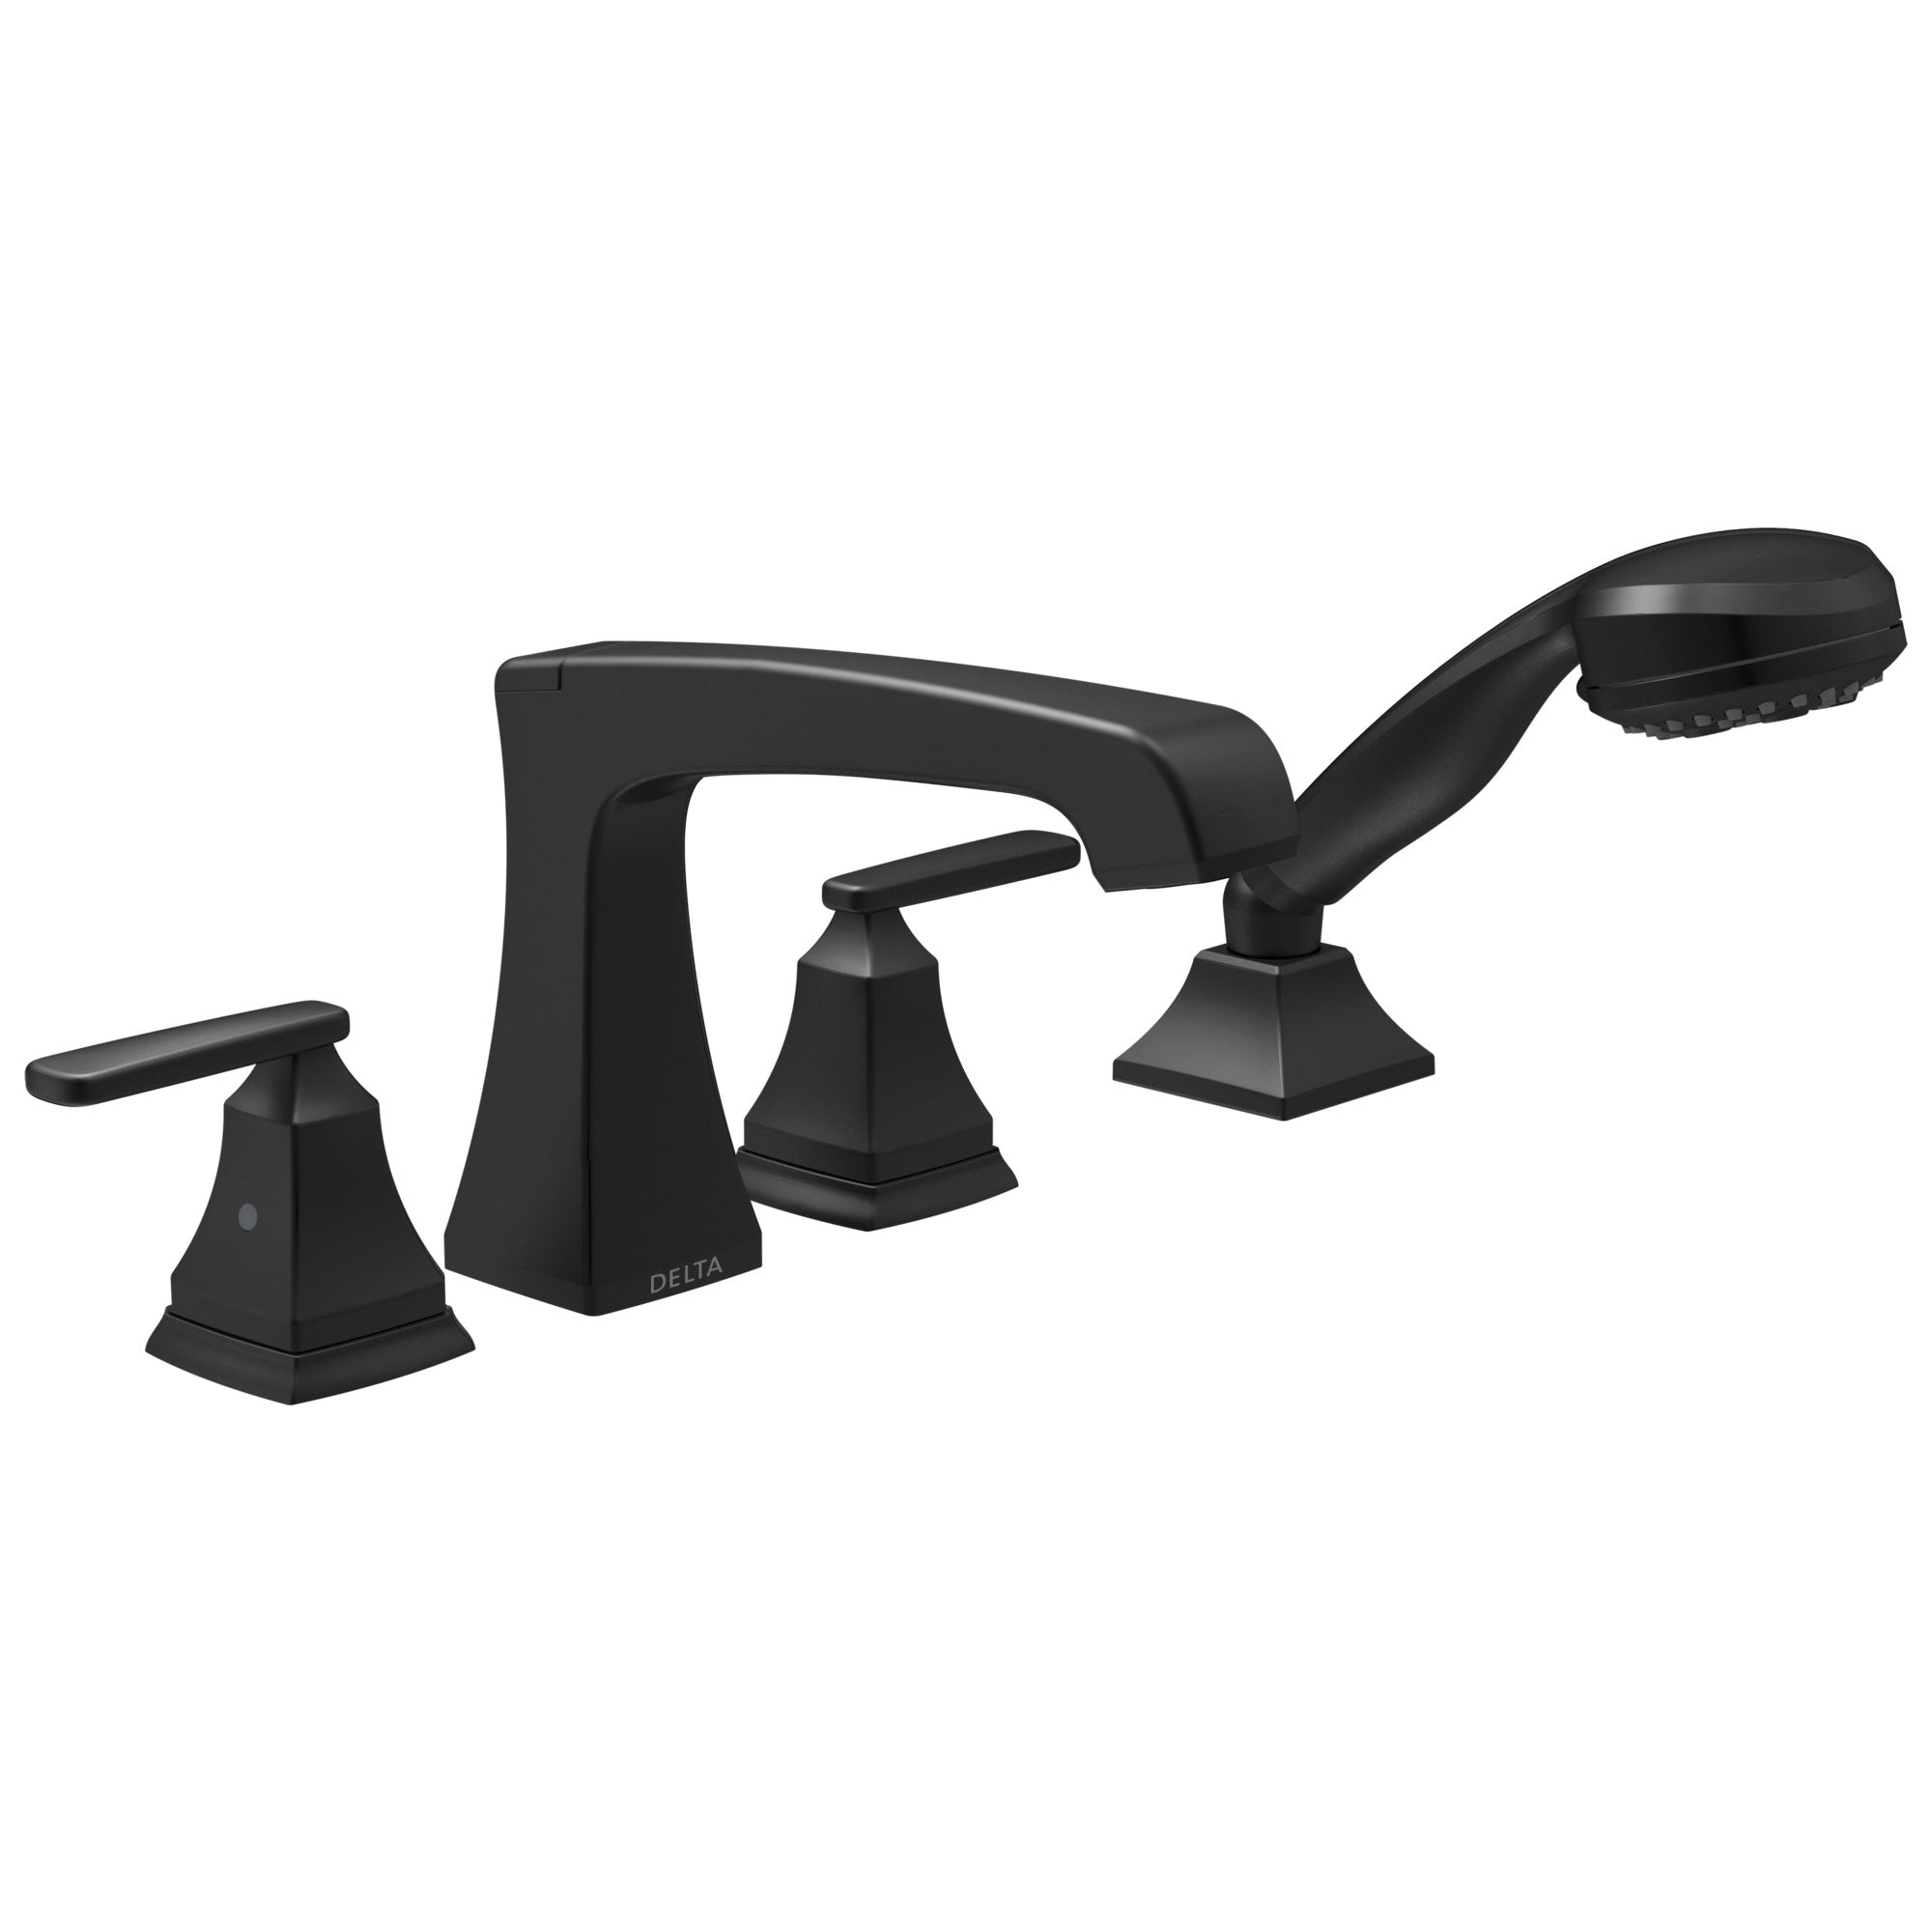 Delta Ashlyn Matte Black Finish Roman Tub Filler Faucet Trim Kit with Hand Shower (Requires Valves) DT4764BL